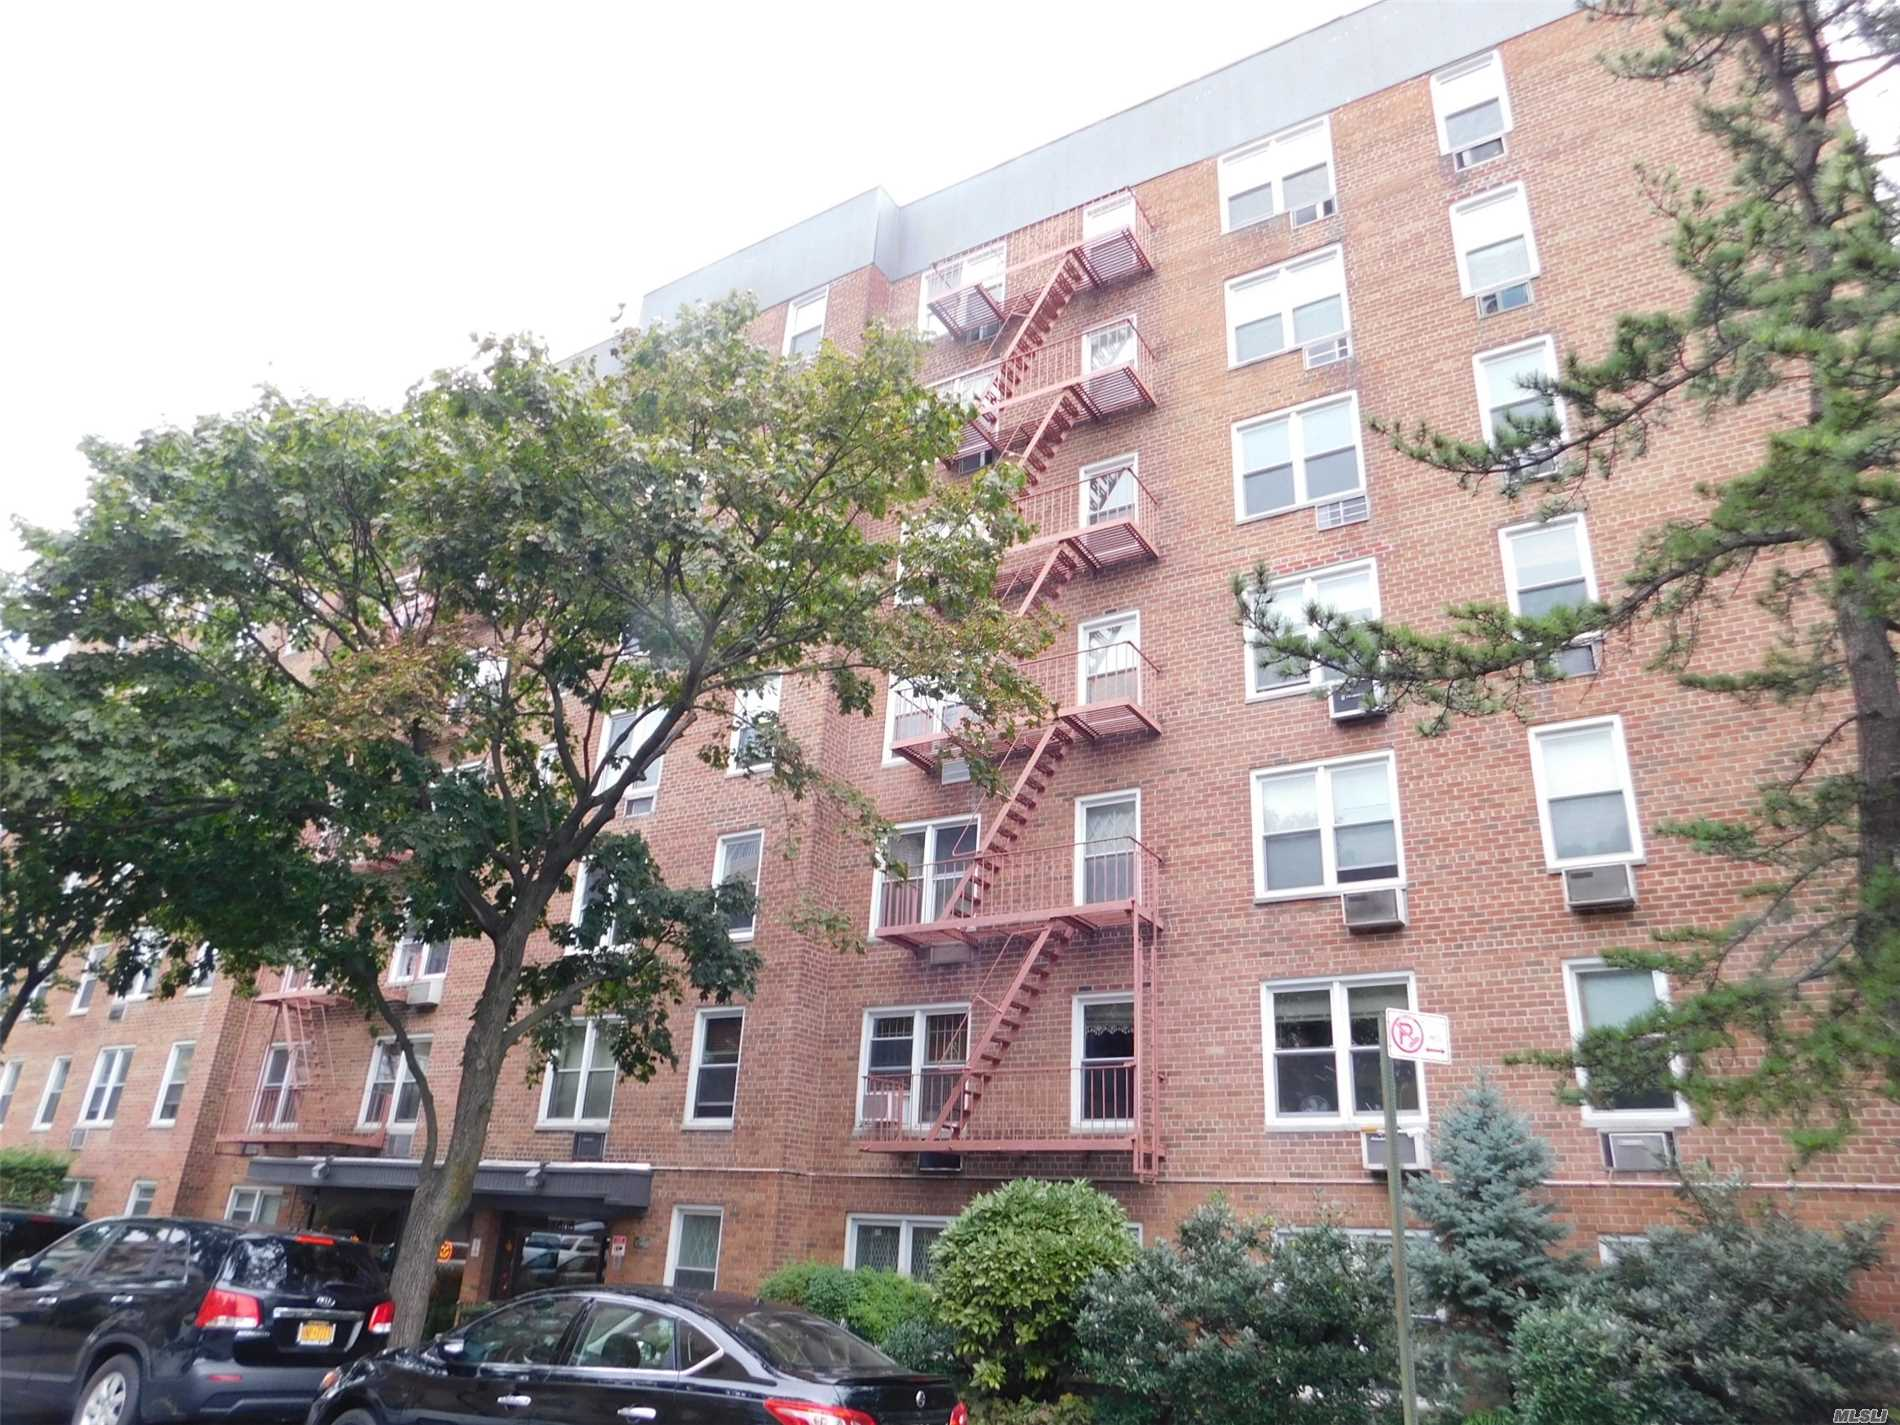 Large 1 Bedroom Ready To Move In, Nice Kitchen And Bath. Can Be Seen At Any Time. Well-Maintained Apartment In A Well-Maintained Building Excellent Street Parking Garage Is Available. Ps 144 Two Blocks To Trader's Joe. Two Blocks To Express Buses To Midtown Manhattan